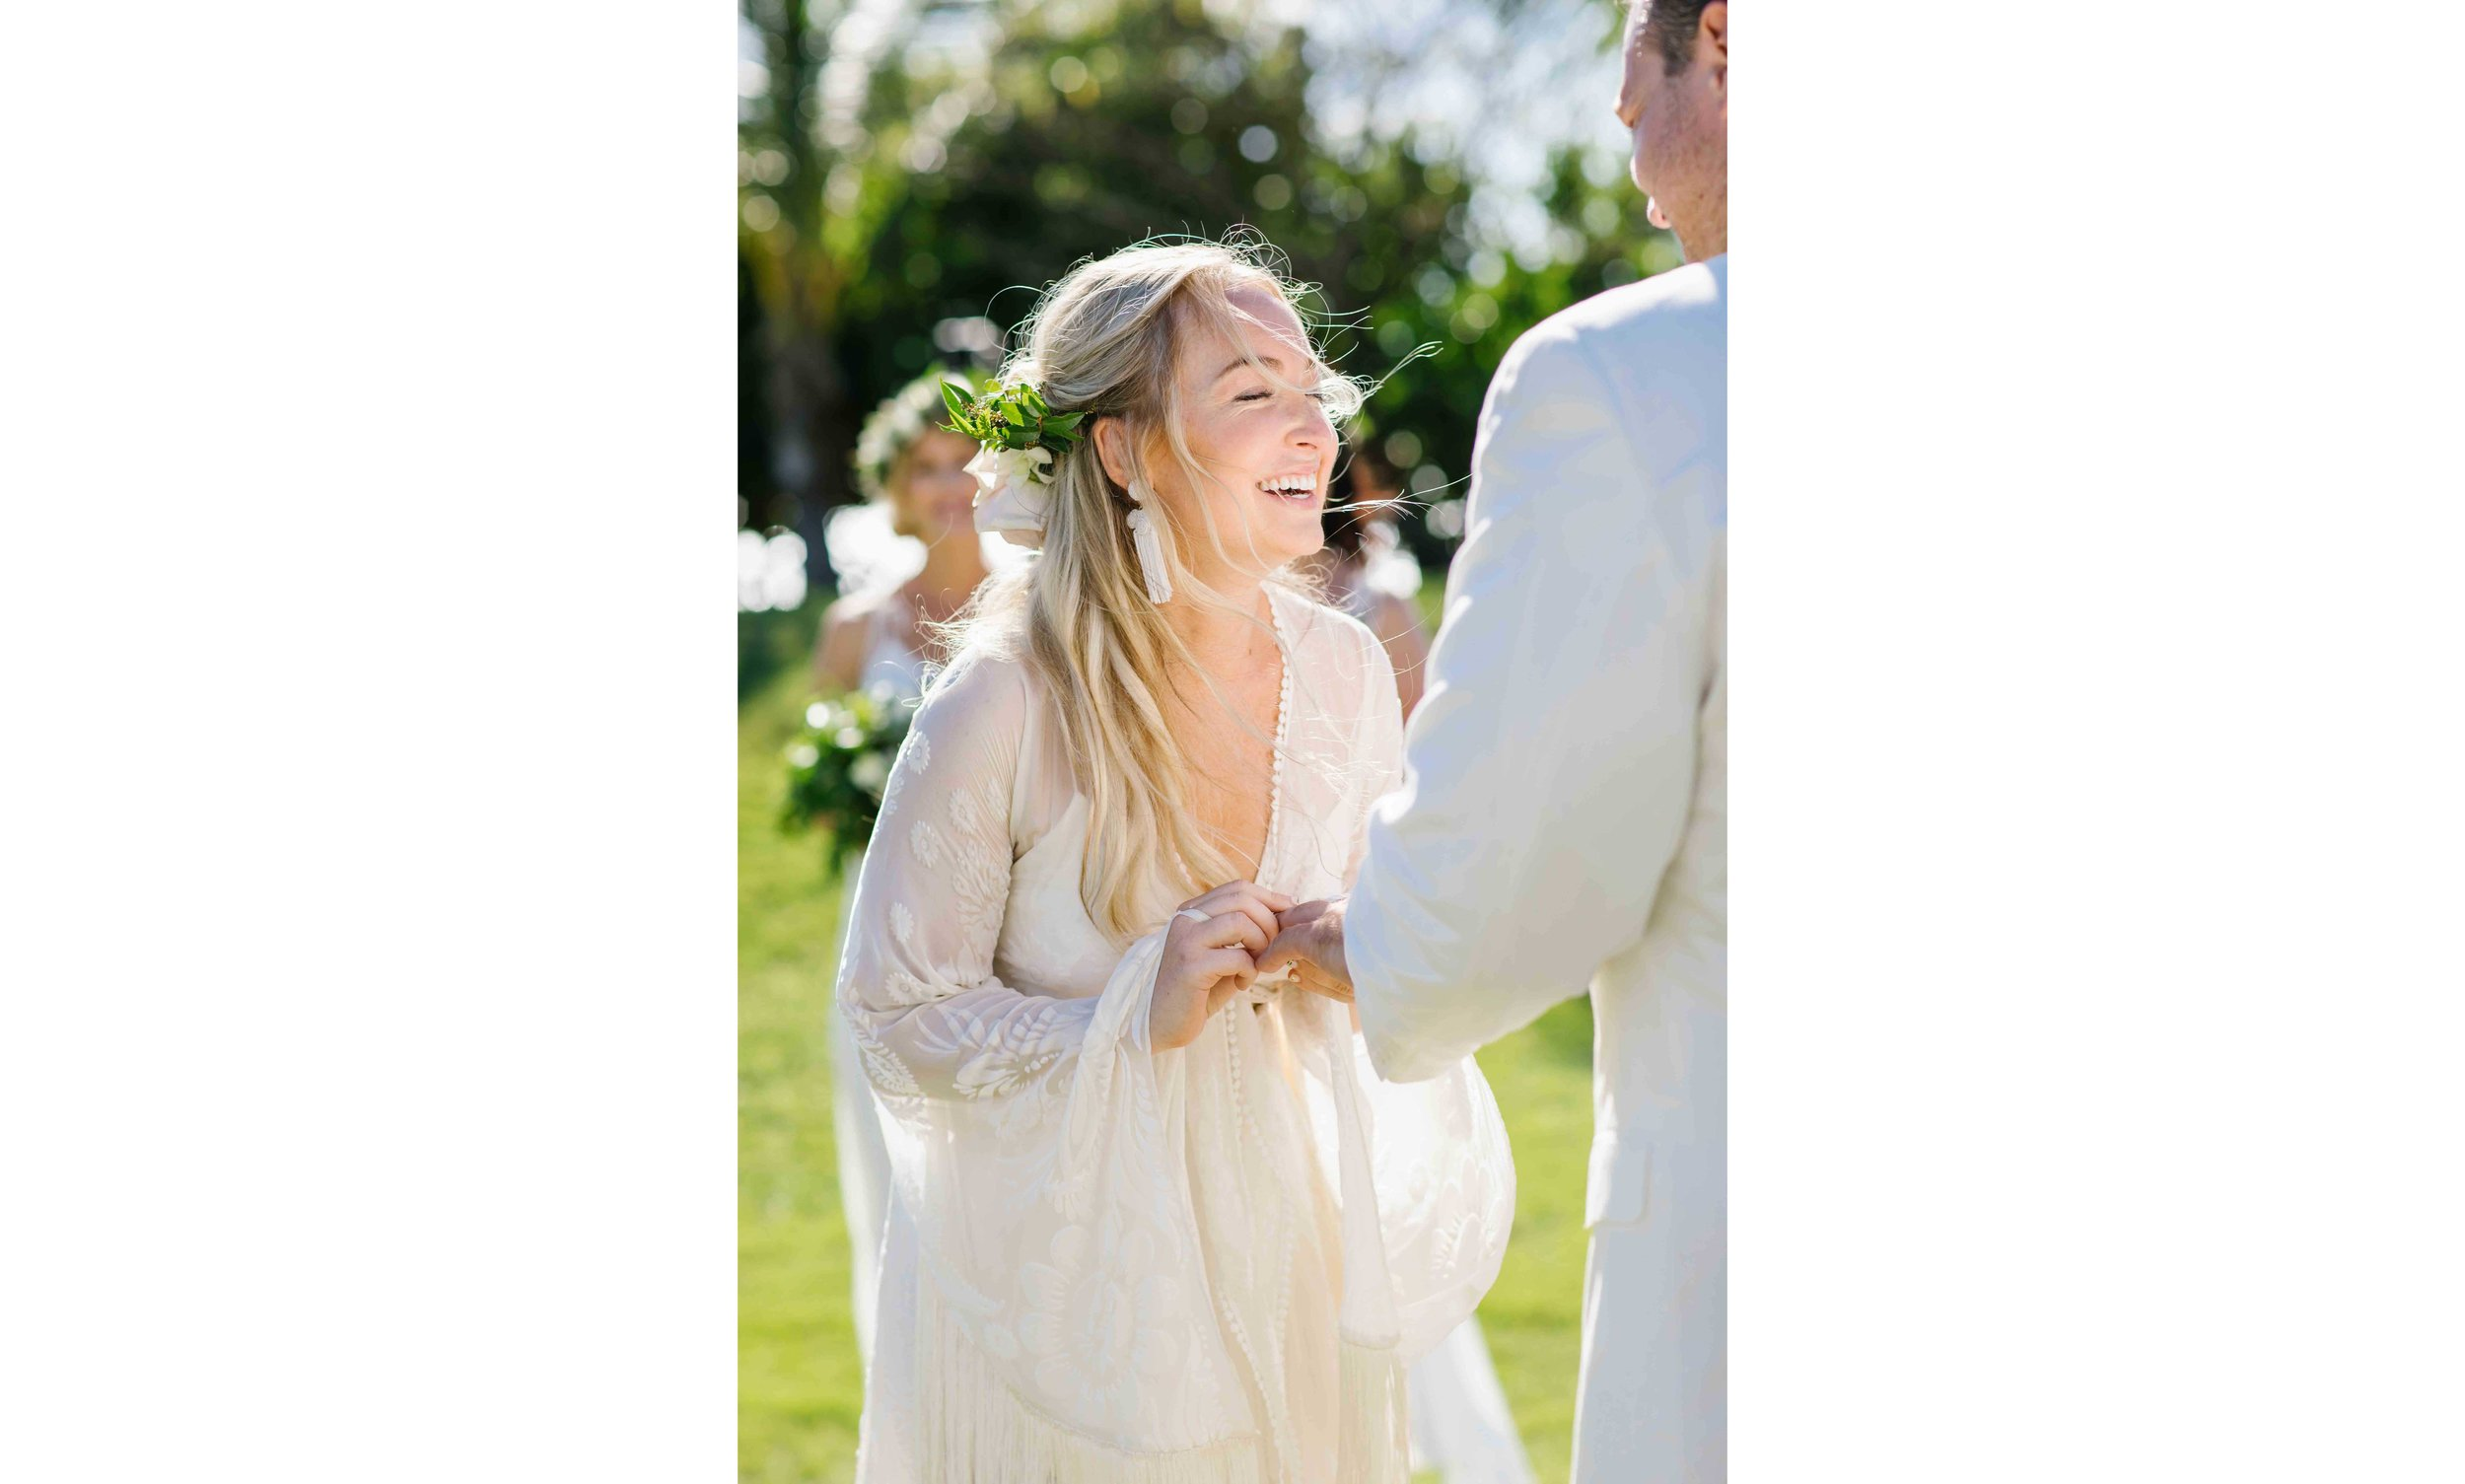 Candid Wedding Photography of a Bride Laughing